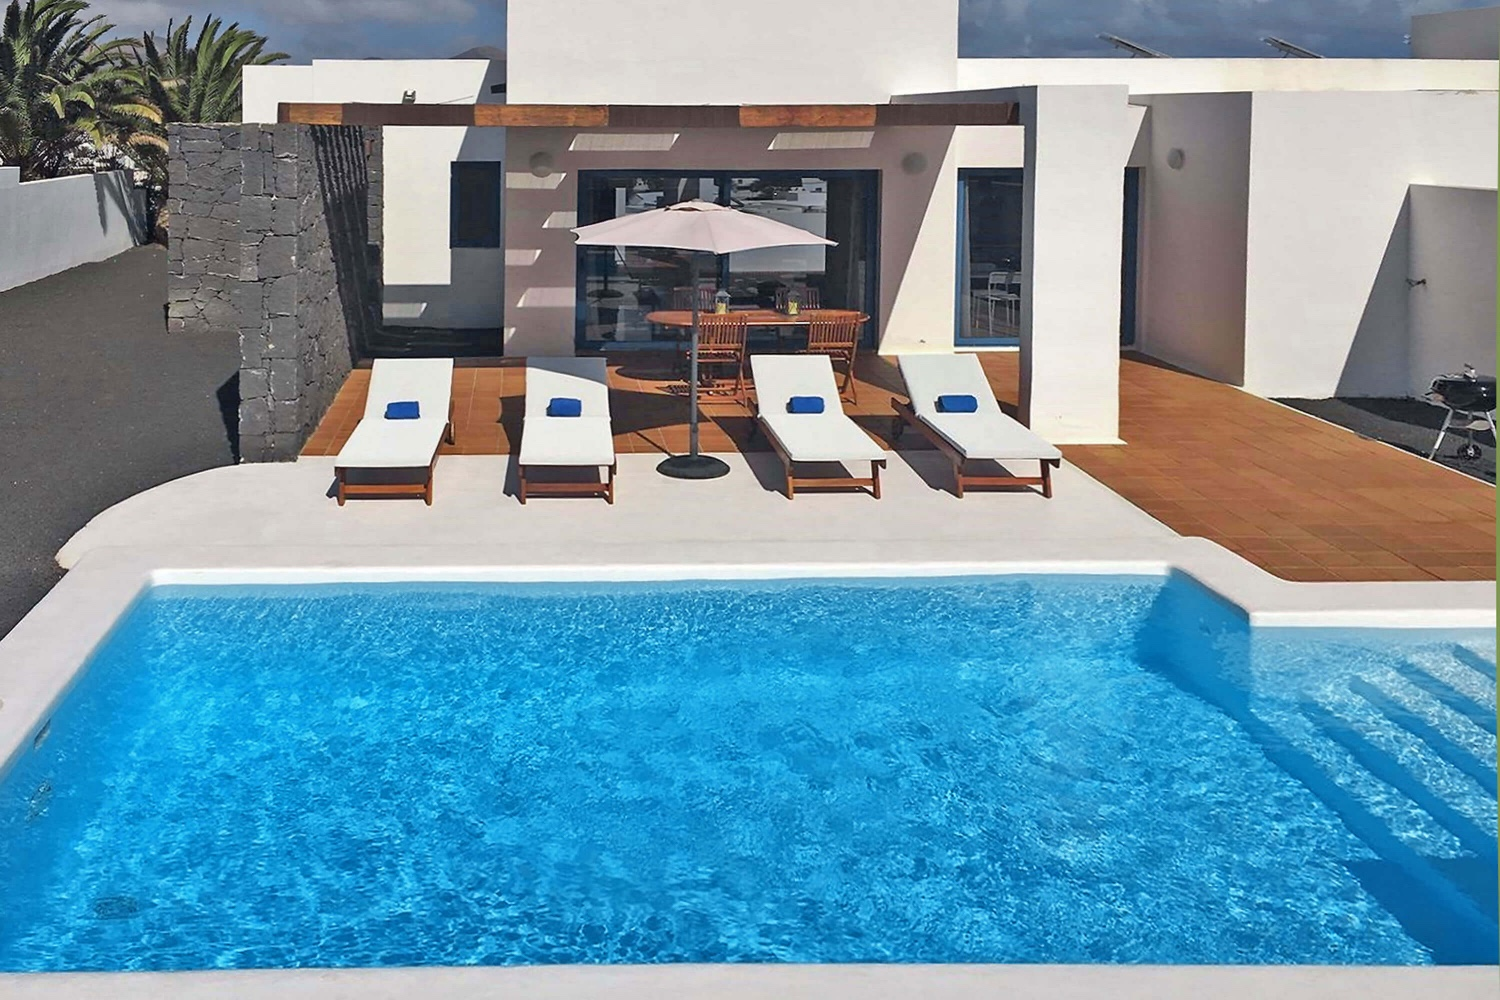 Excellent villa with private heateable pool, well located on the slopes of the volcano of Montaña Roja and with beautiful views of the Natural Monument